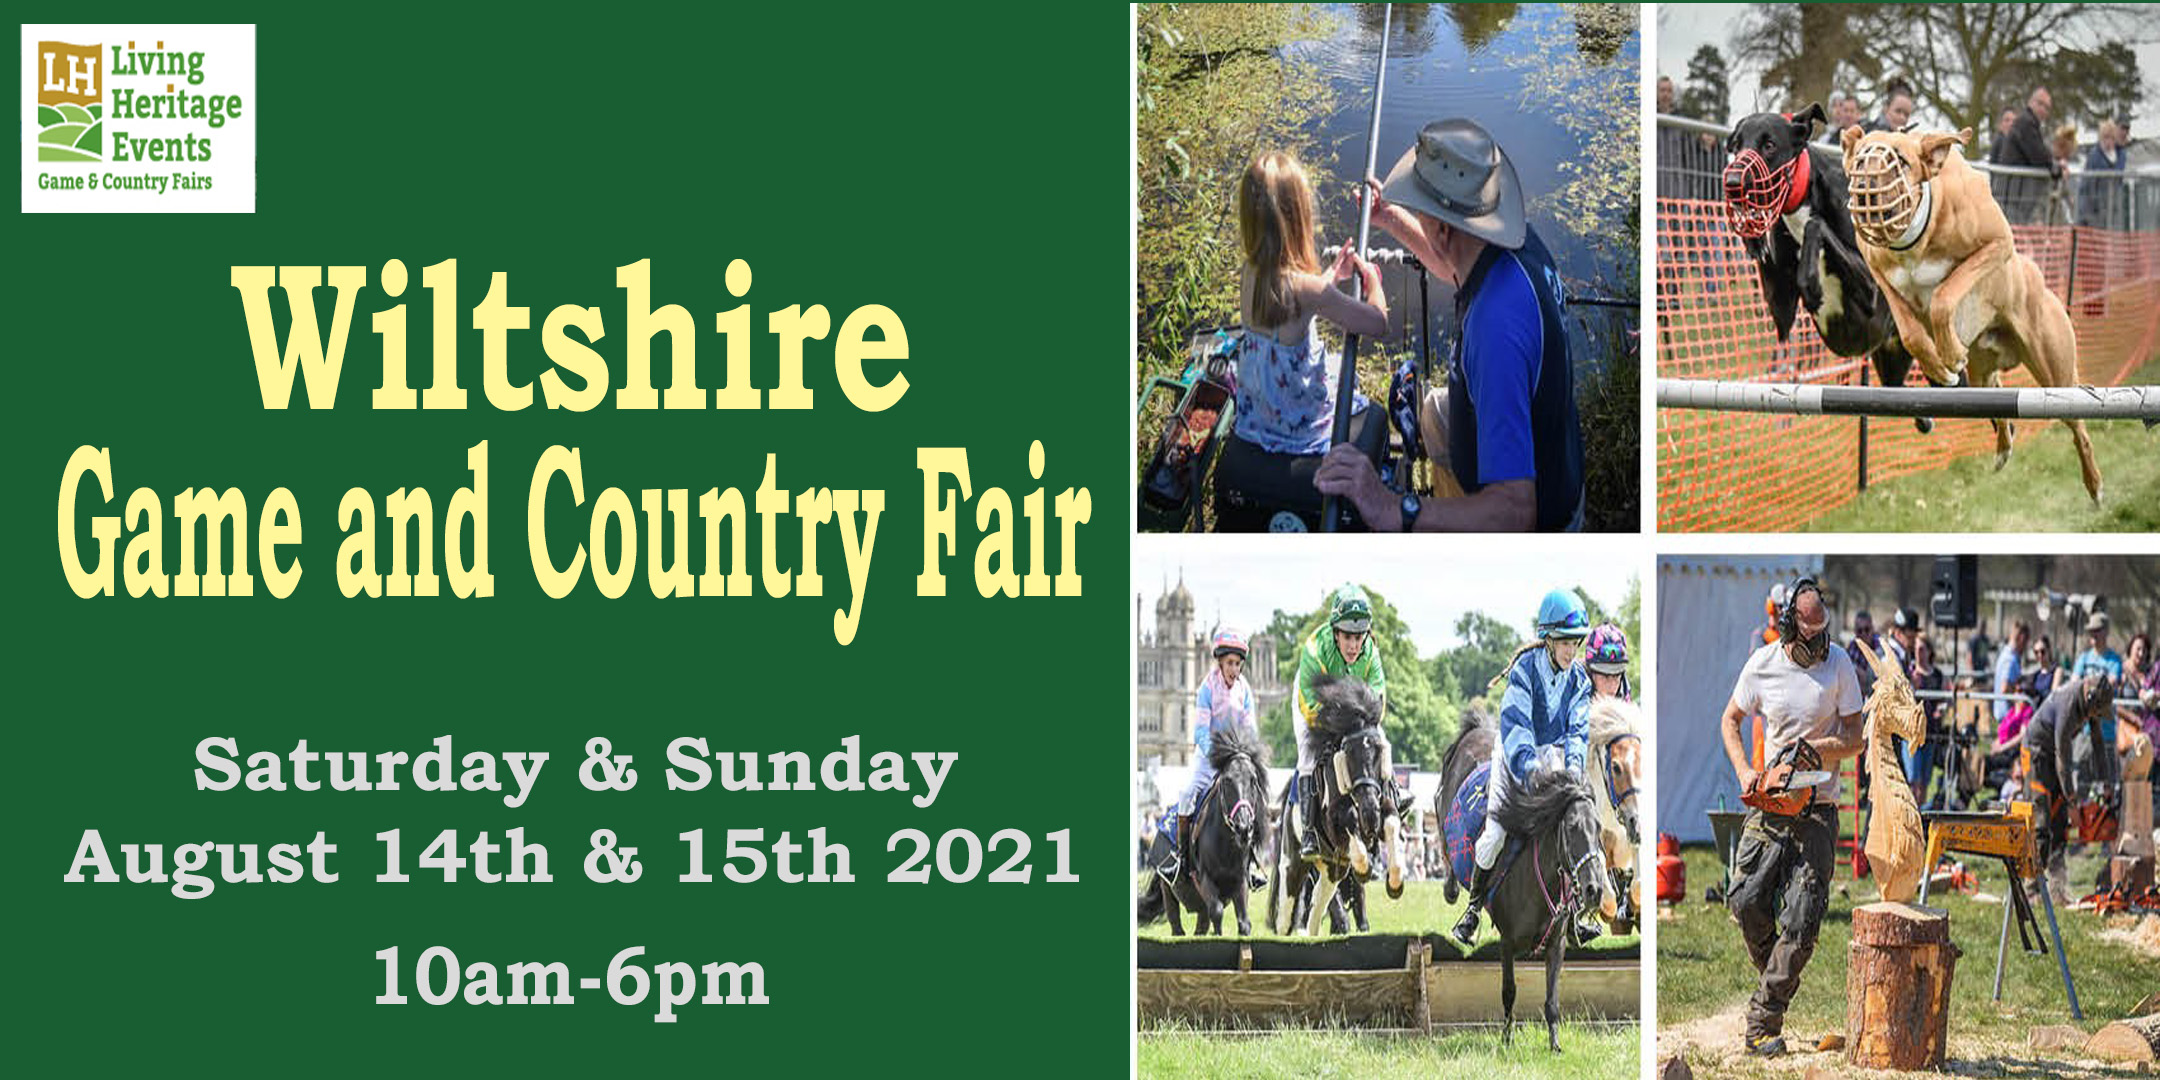 Wiltshire Game and Country Fair